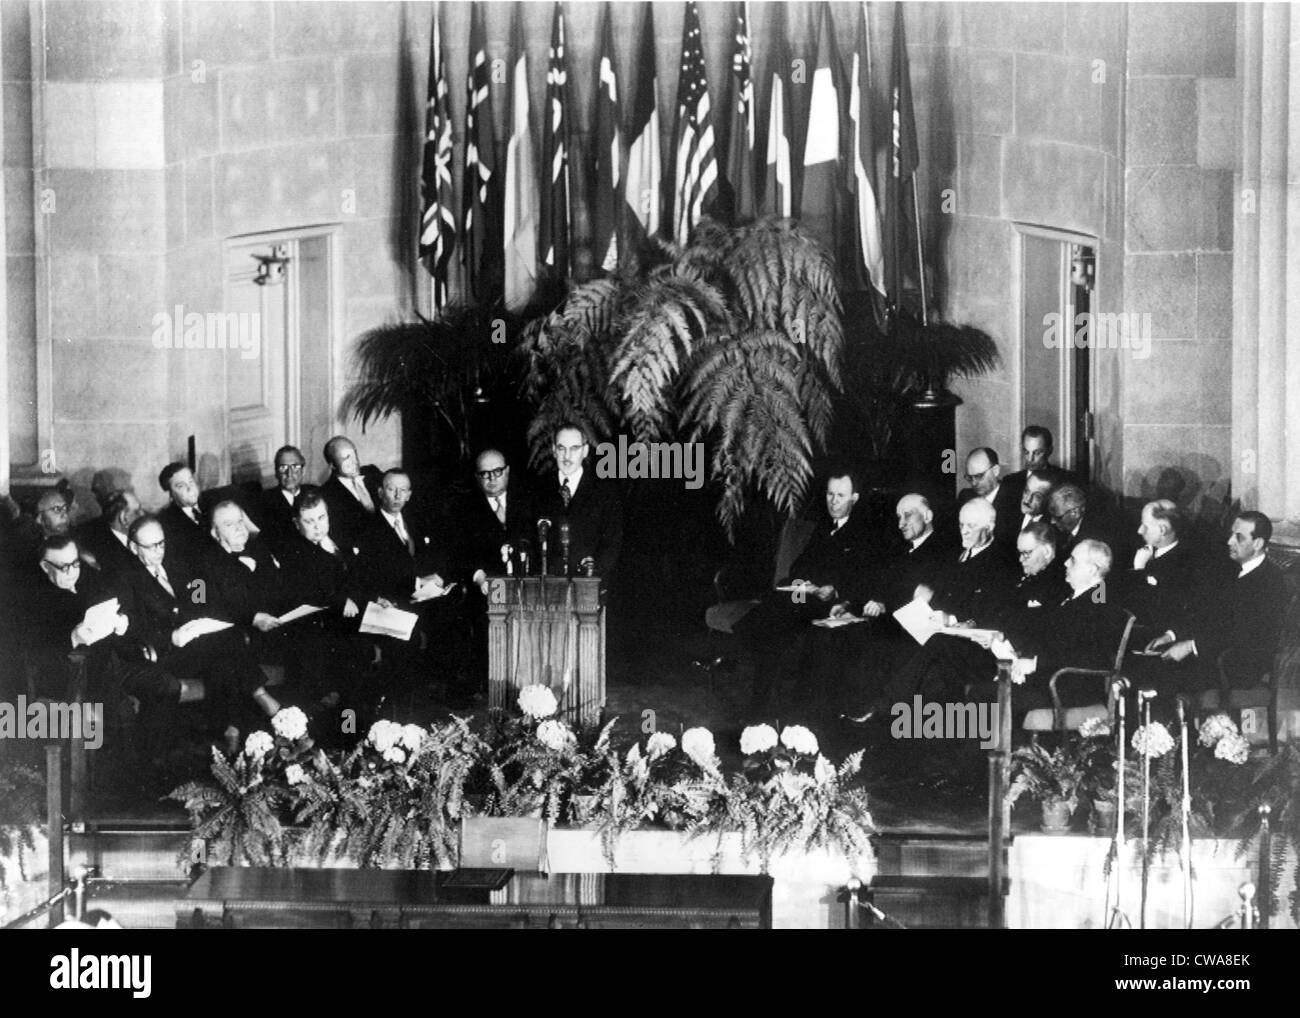 N.A.T.O.-4/4/49 WASHINGTON--  Secretary of State Dean Acheson makes welcoming address at North Atlantic treaty Signing - Stock Image